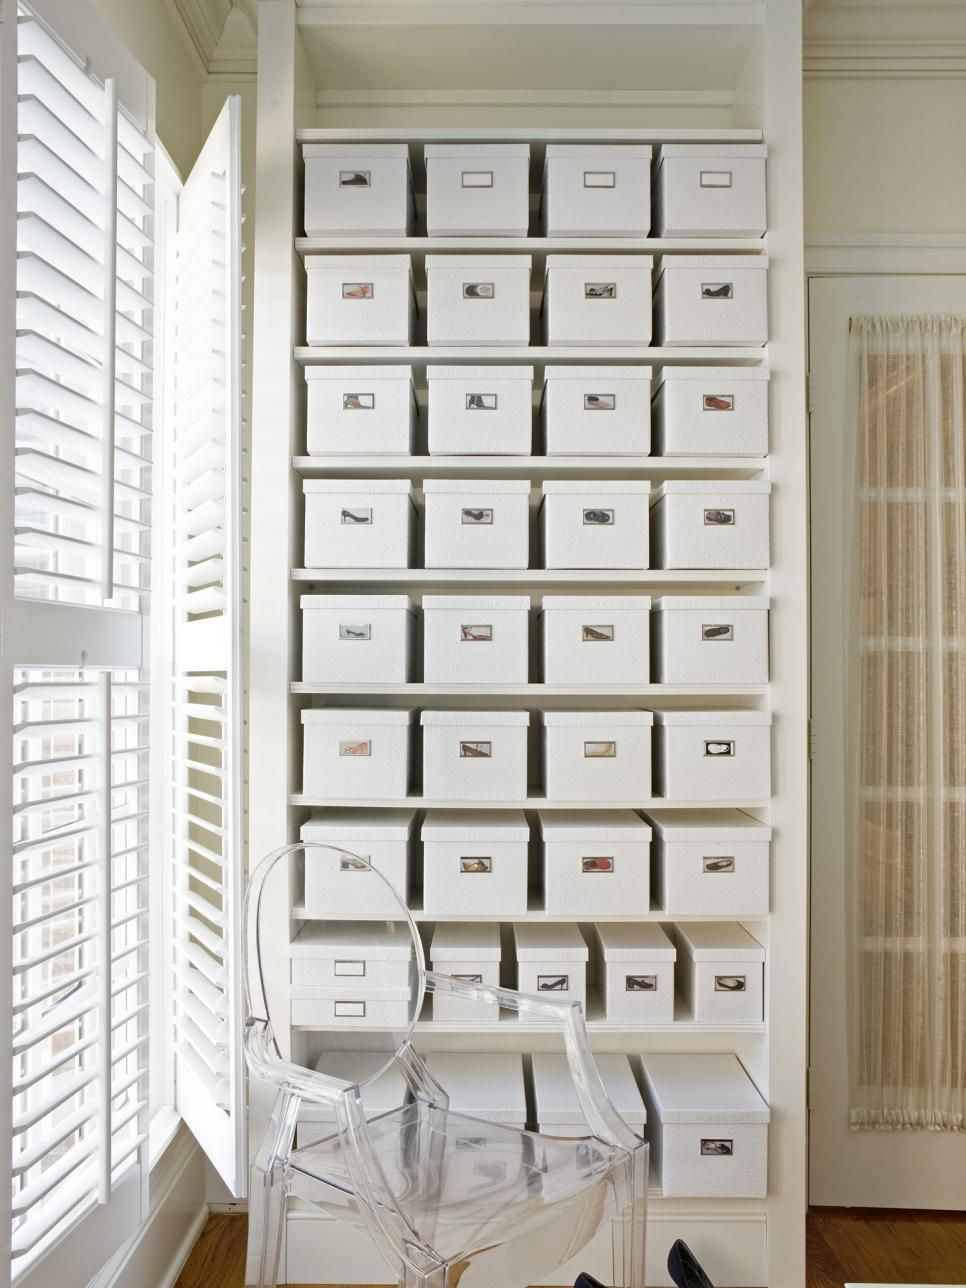 How To Decorate Shoe Boxes For Storage 8 Clever Shoe Storage Tips  Hgtv Organizing And Decorating